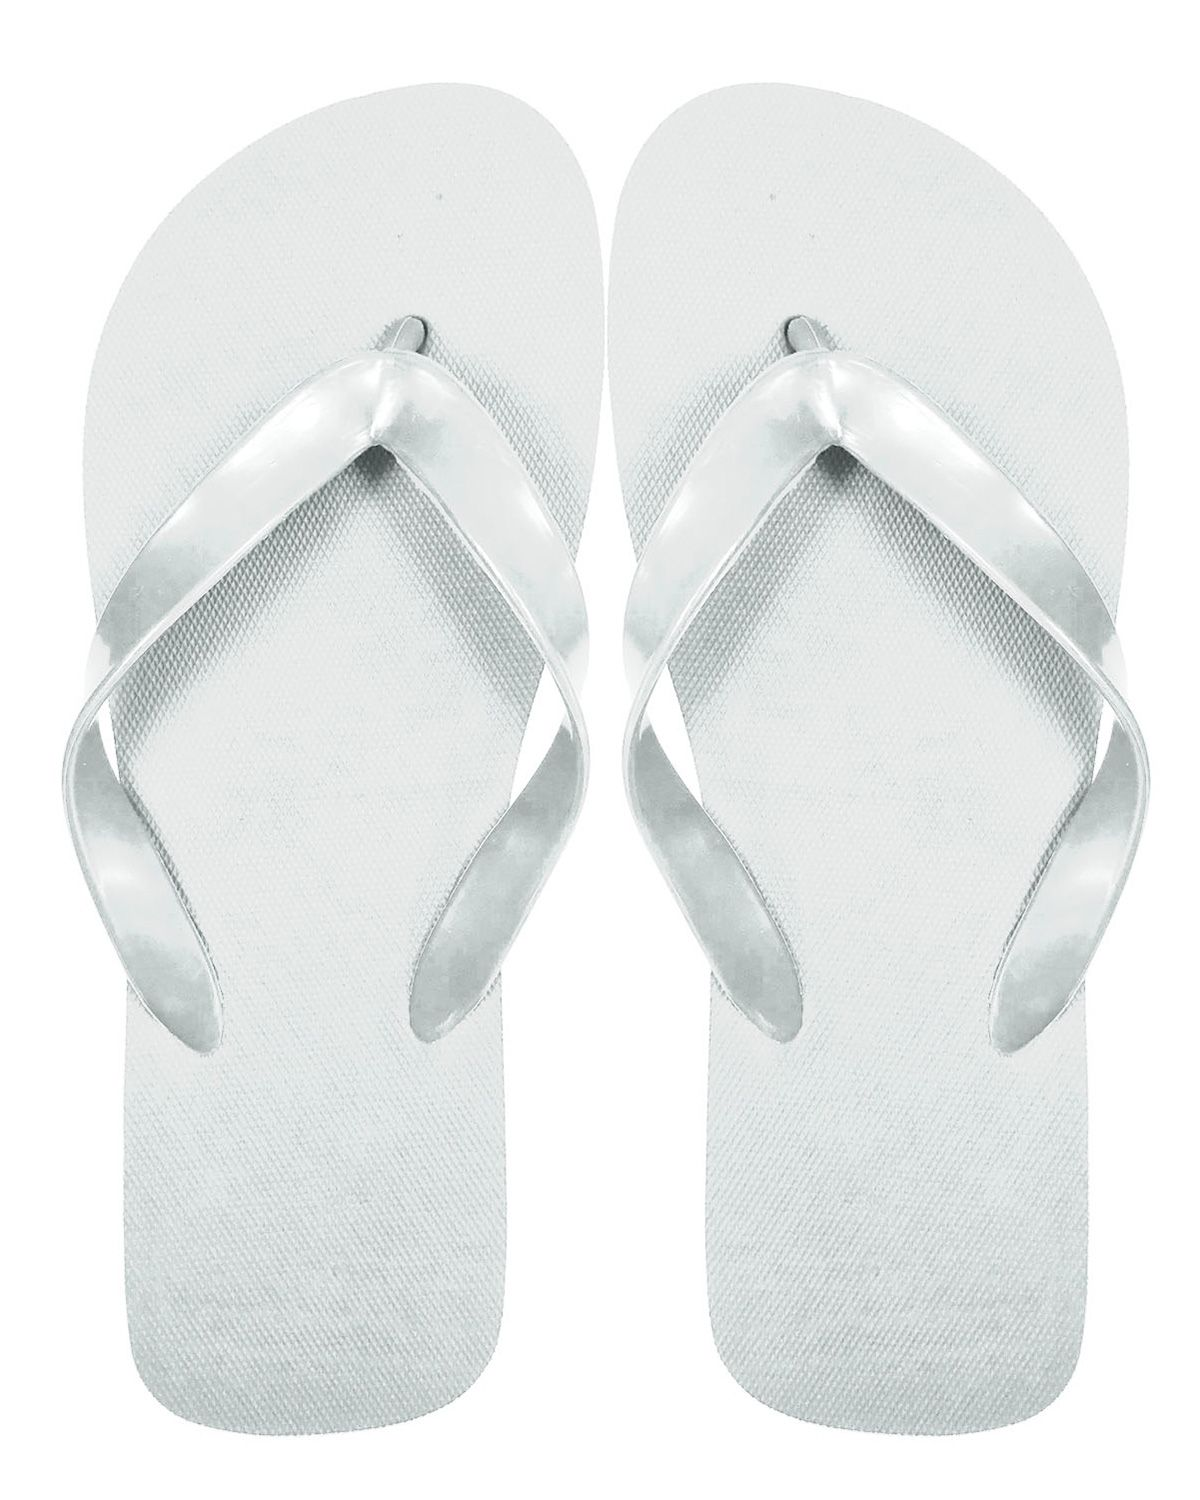 b75c7b7110d8c Pro Towels COPAL Ladies Copa Flip Flop - Free Shipping Available